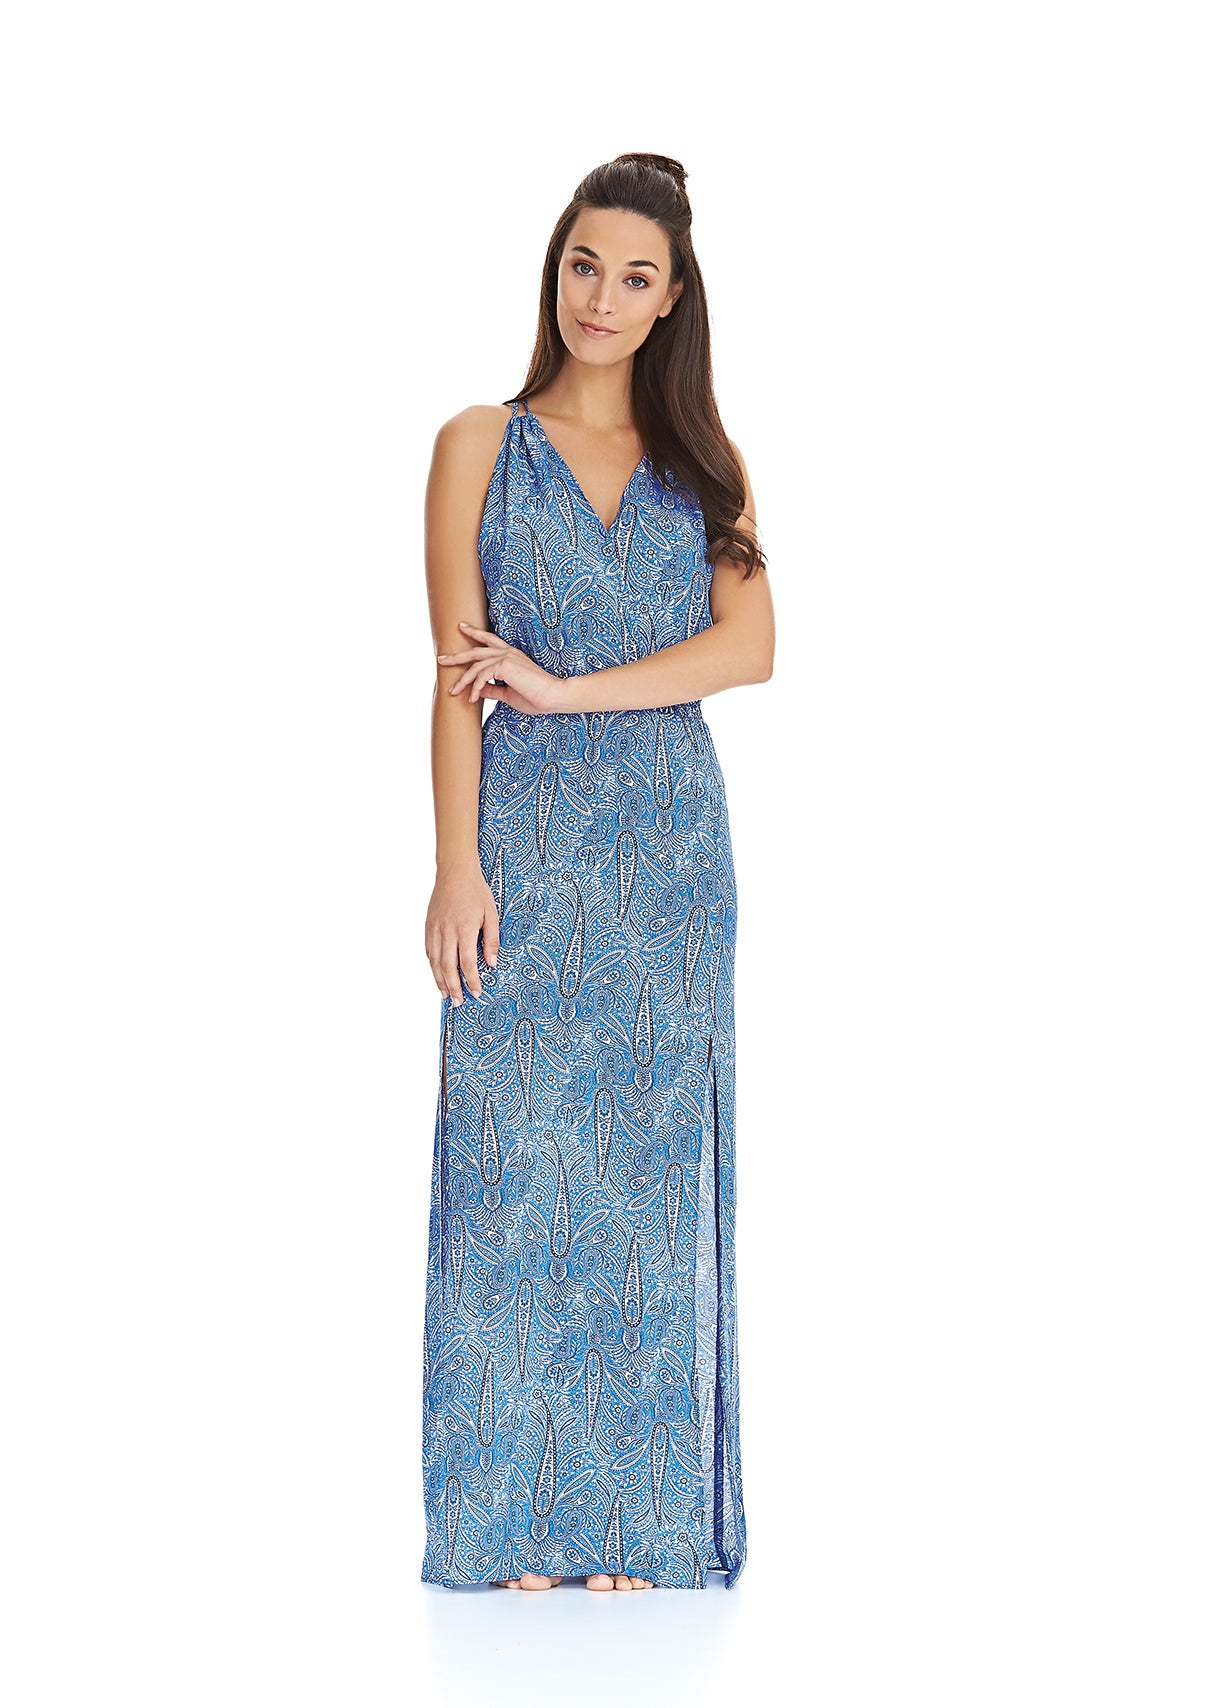 Freya Swim Summer Tide Maxi Dress AS4477